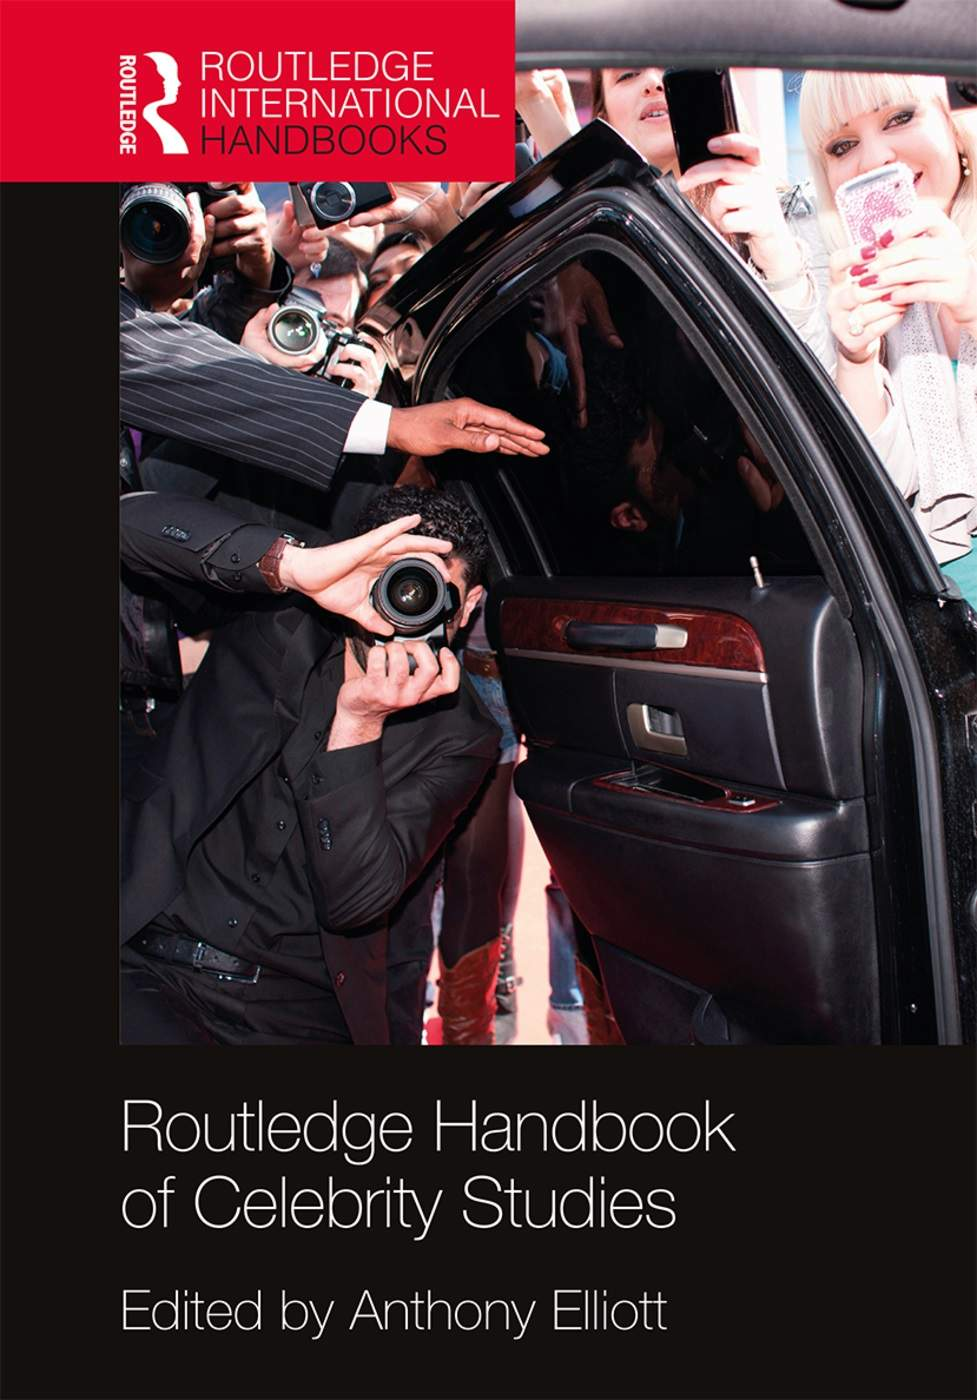 Routledge Handbook of Celebrity Studies